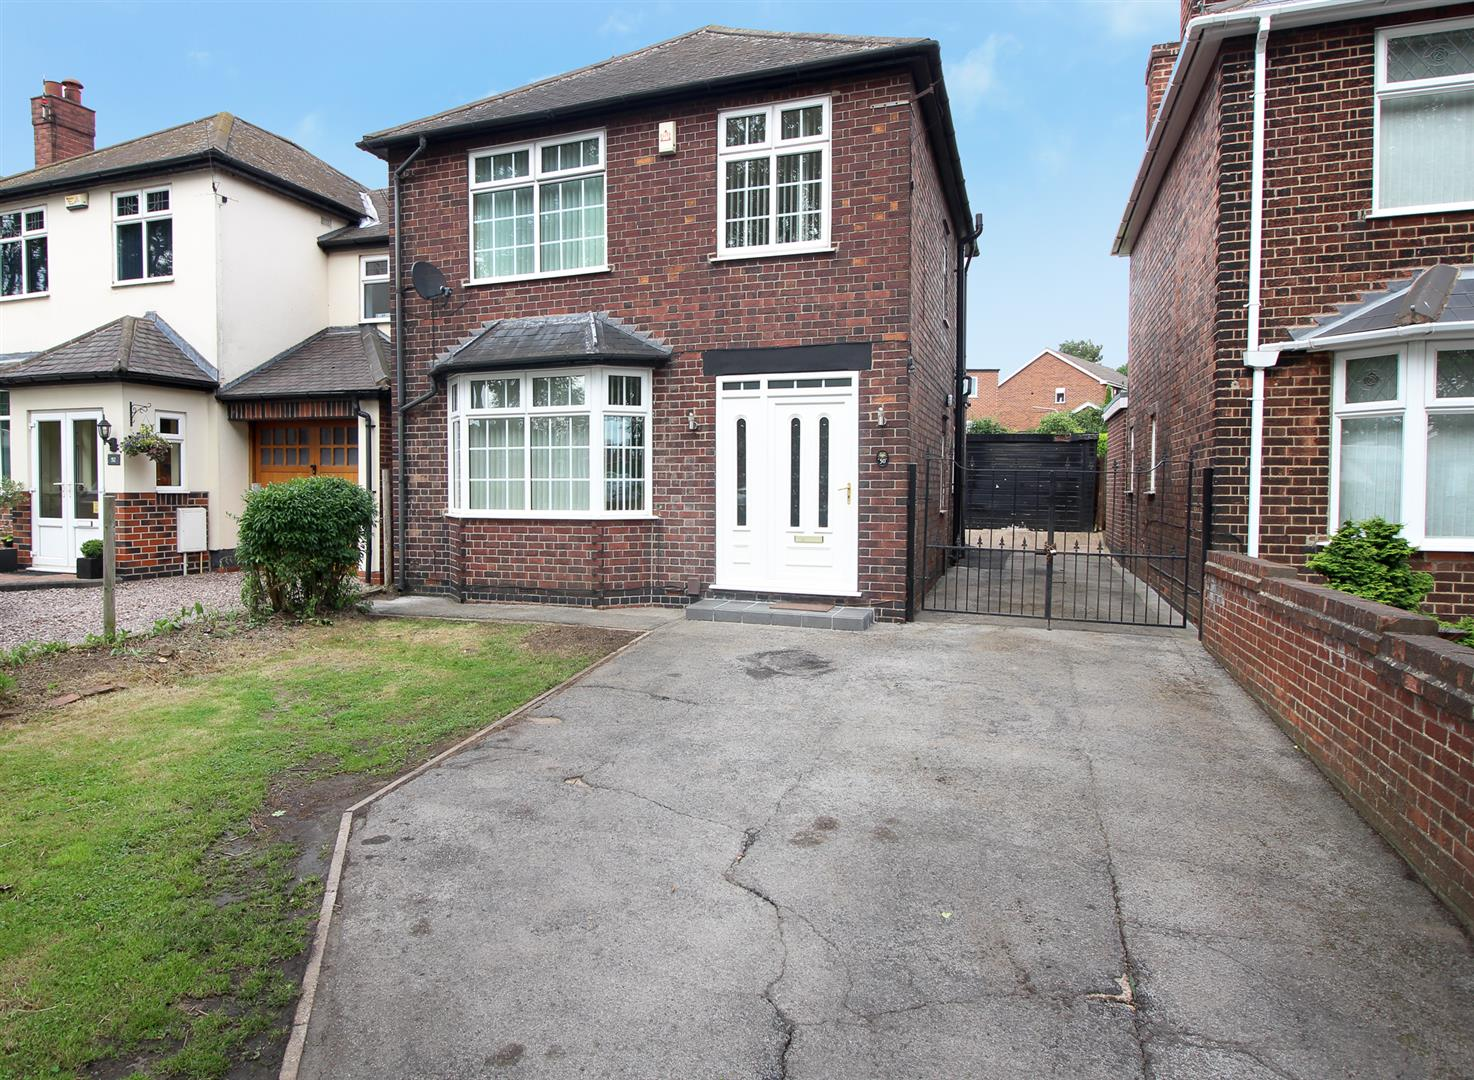 4 Bedrooms Property for sale in Ilkeston Road Trowell, Nottingham